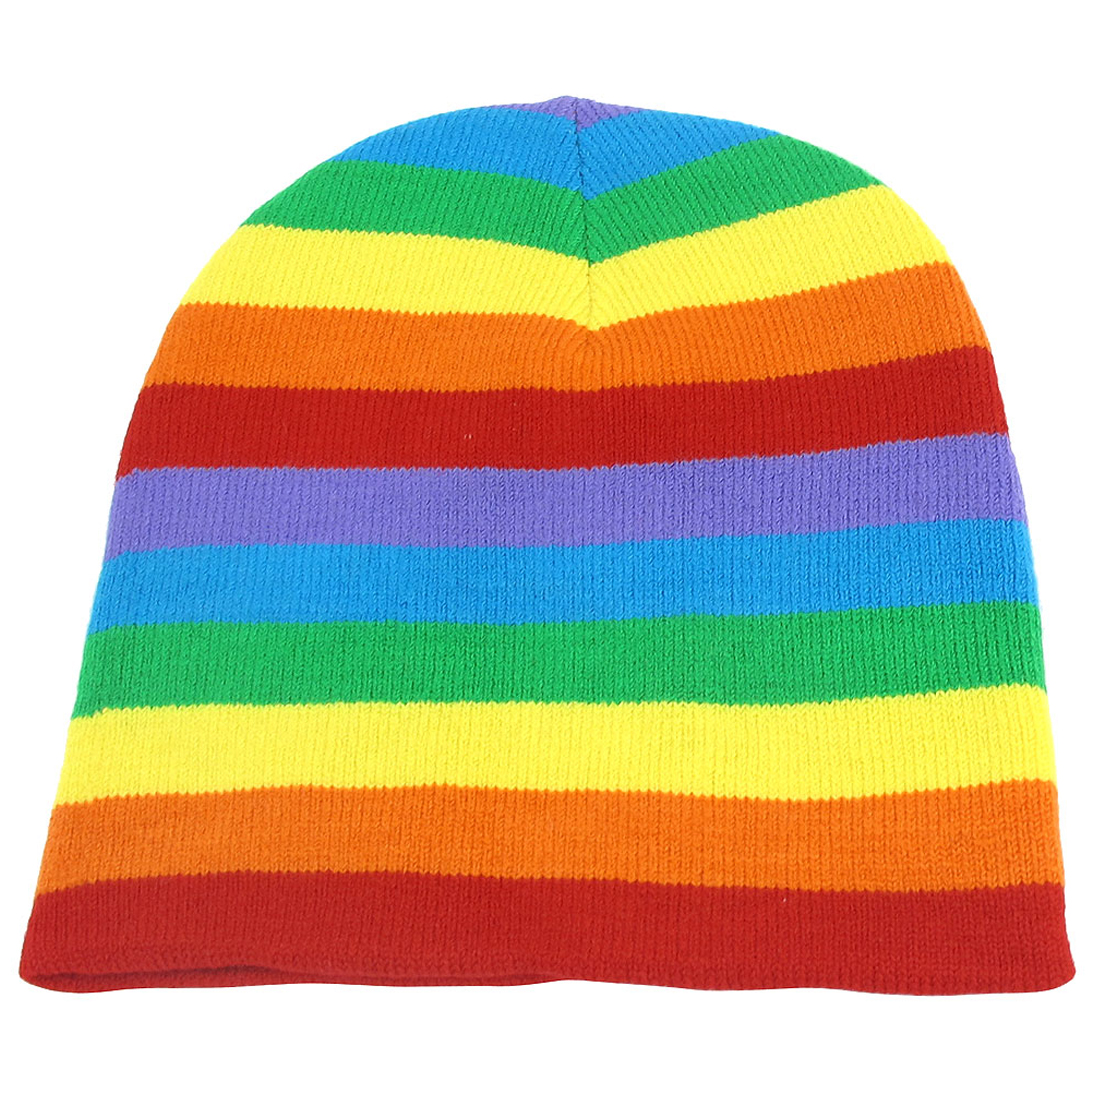 Unisex Rain Color Stretchy Hand Knit Warm Beanie Snowboarding Winter Hat Cap